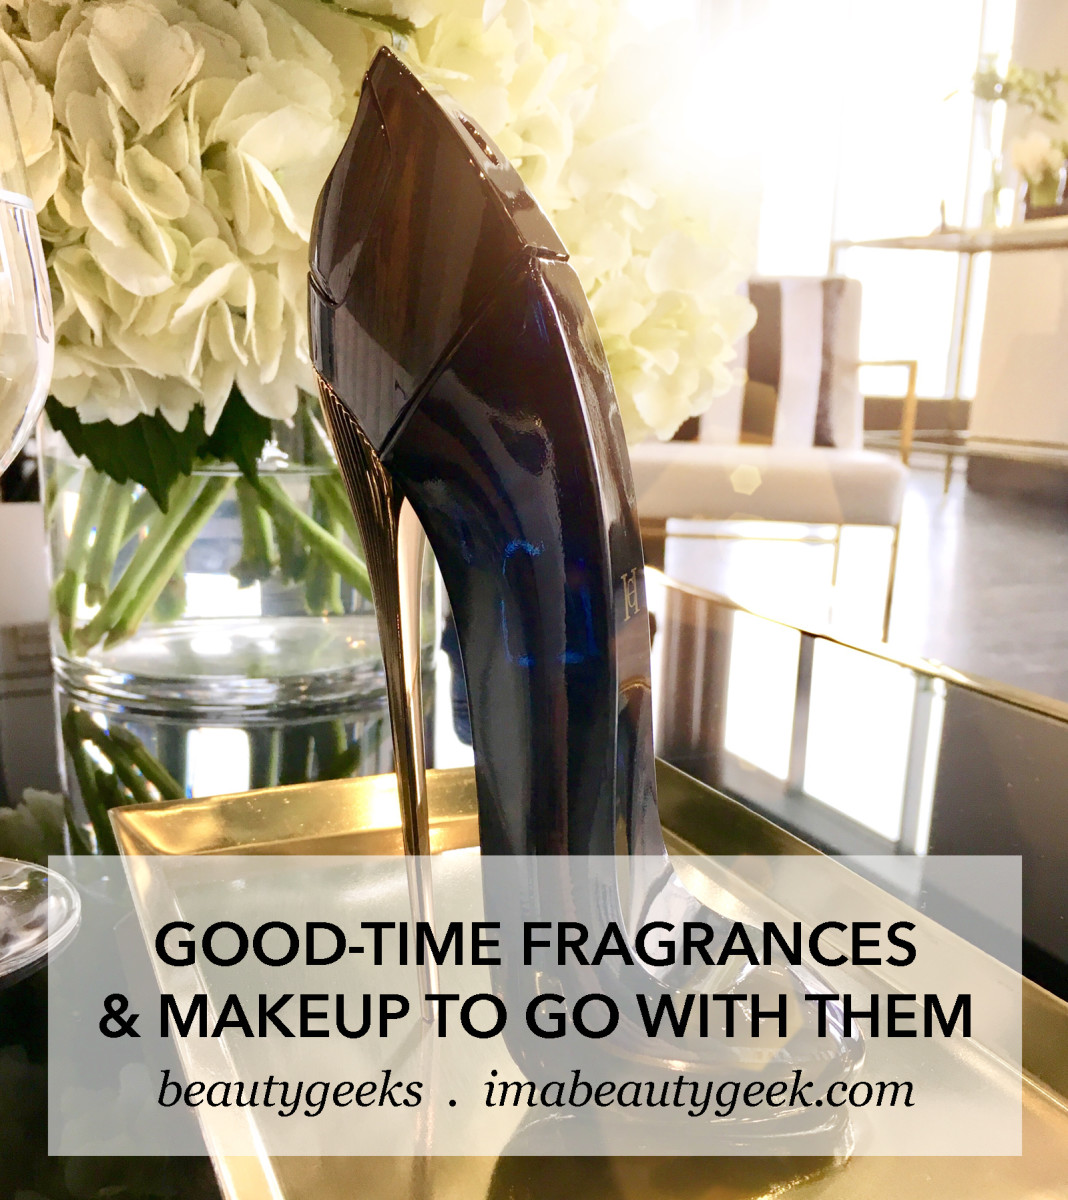 Scent Duets_Good Time Fragrances and Makeup to Go With Them